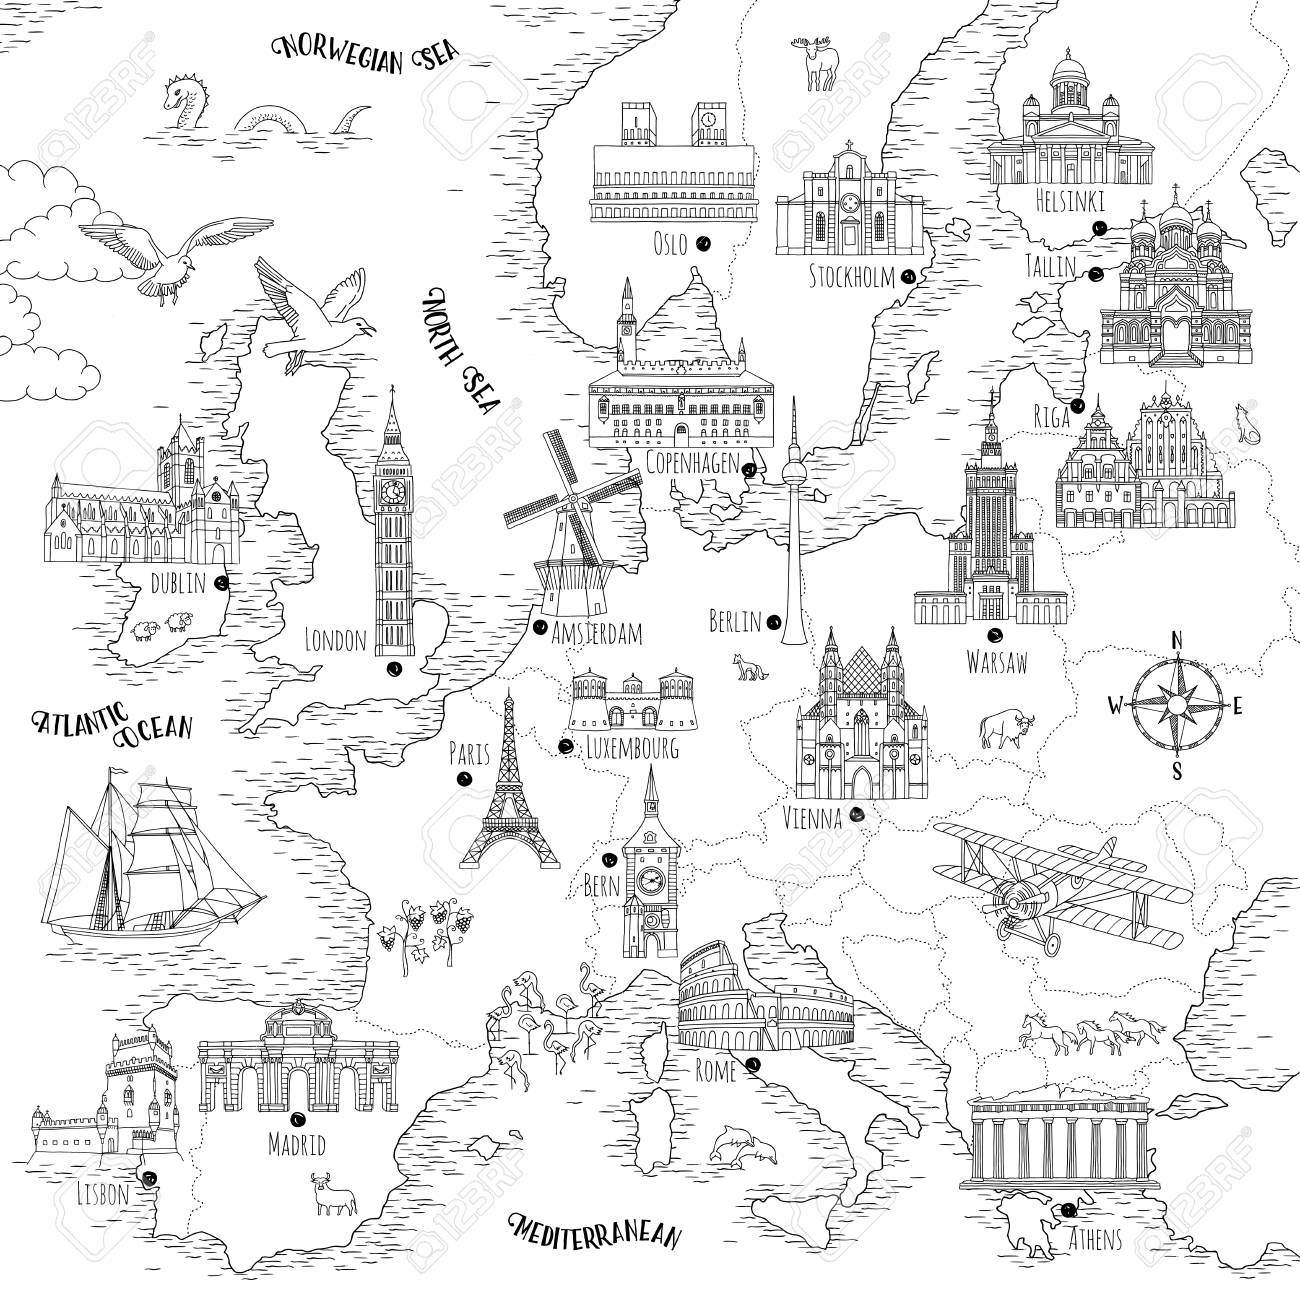 Hand drawn map of Europe with selected capitals and landmarks, vintage style - 104080112